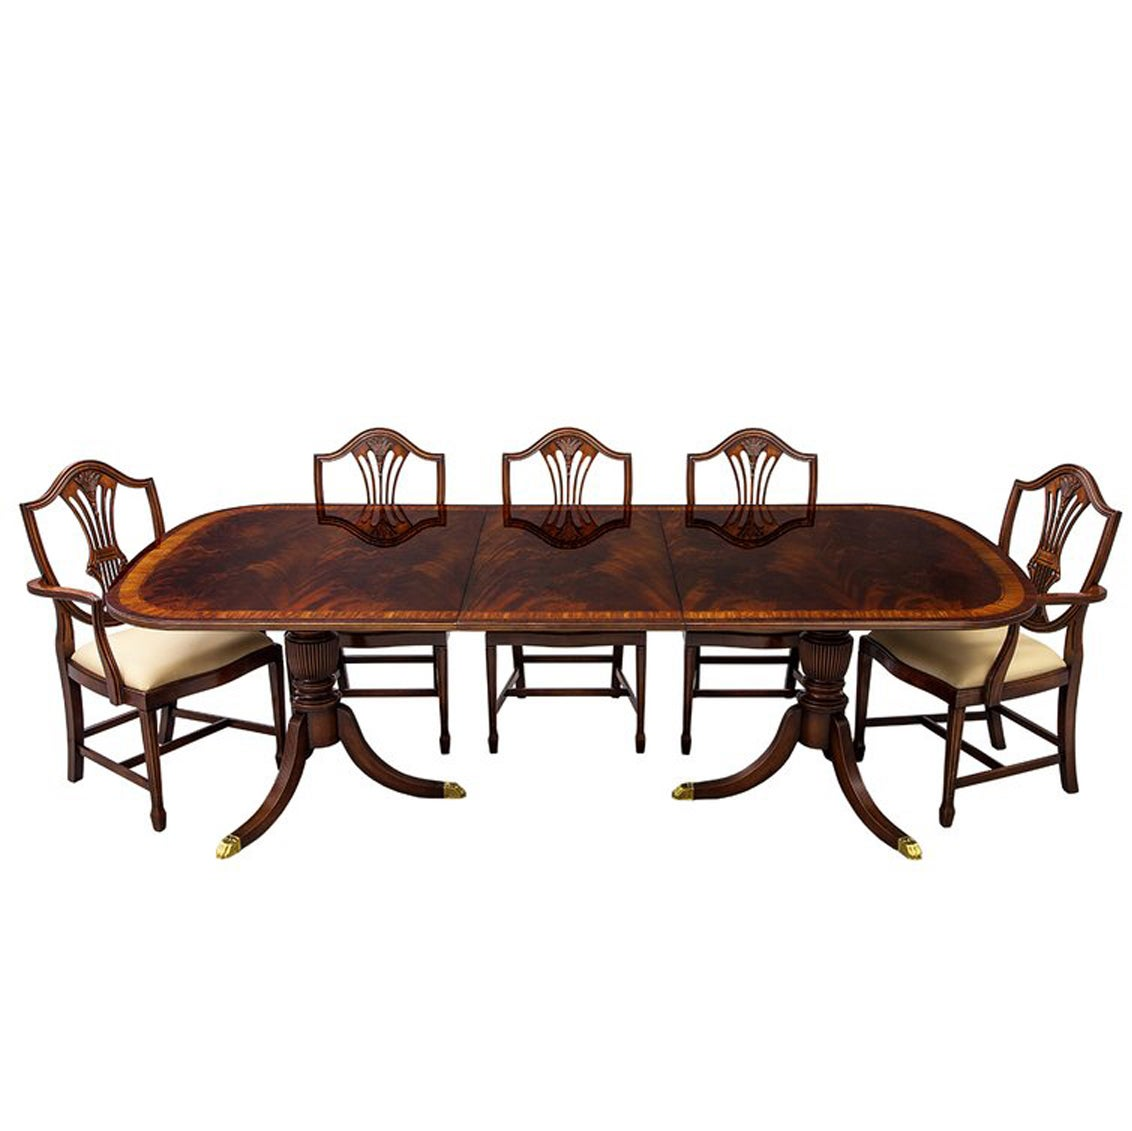 Flamed Mahogany Duncan Phyfe Style High Gloss Dining Table and 8 Chairs Set